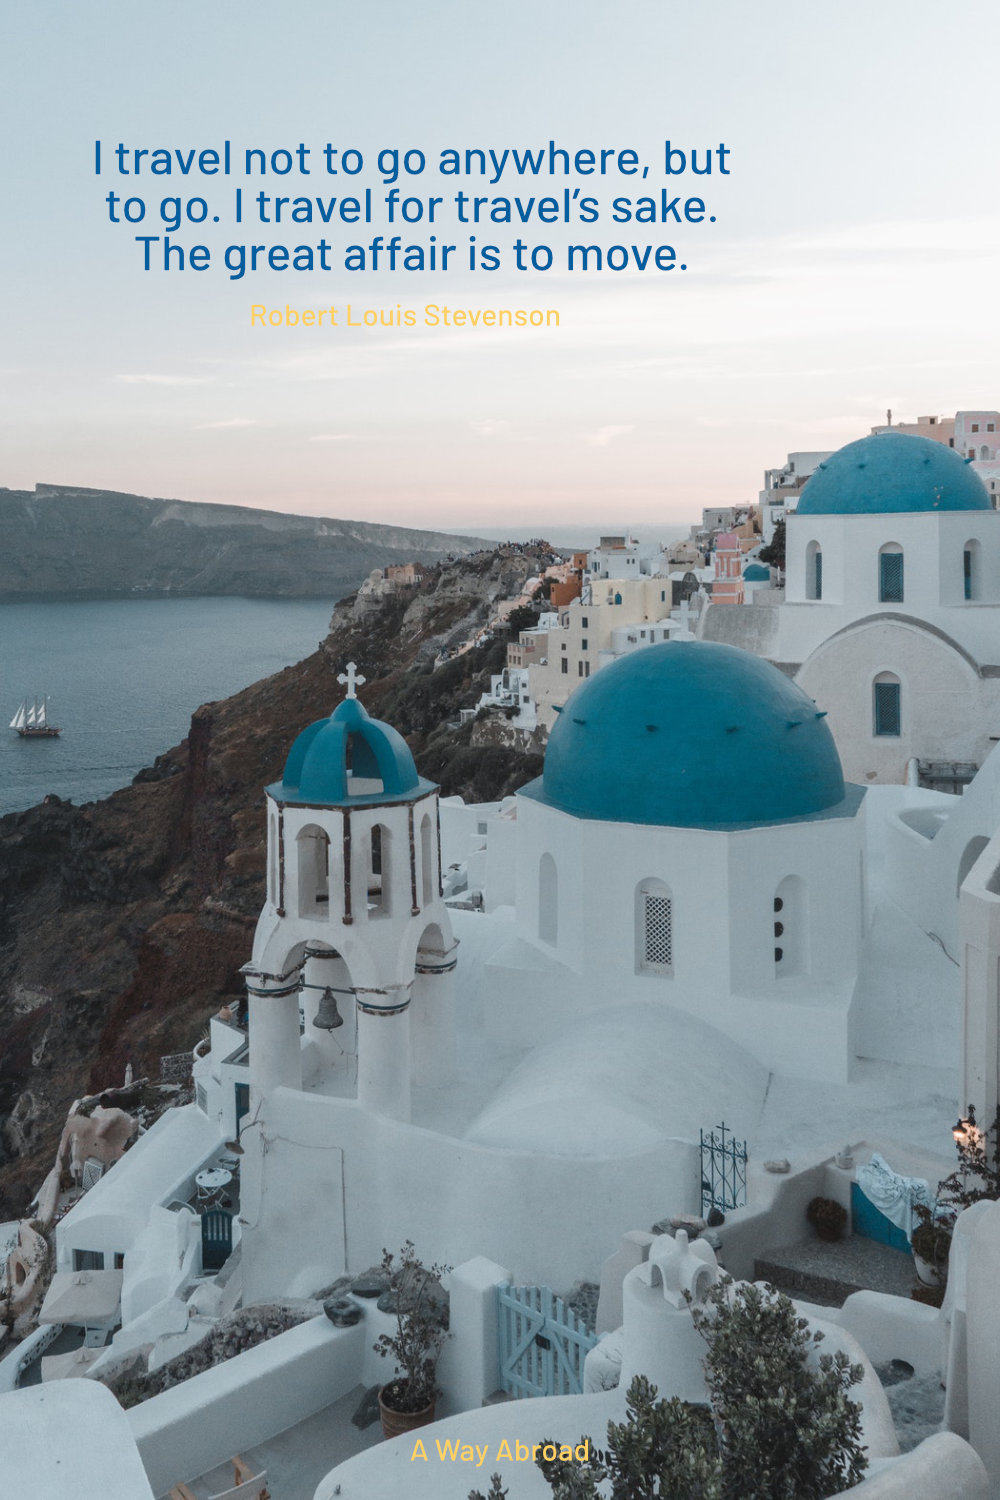 Santorini at sunset with the white and blue buildings overlooking the sea and mountains